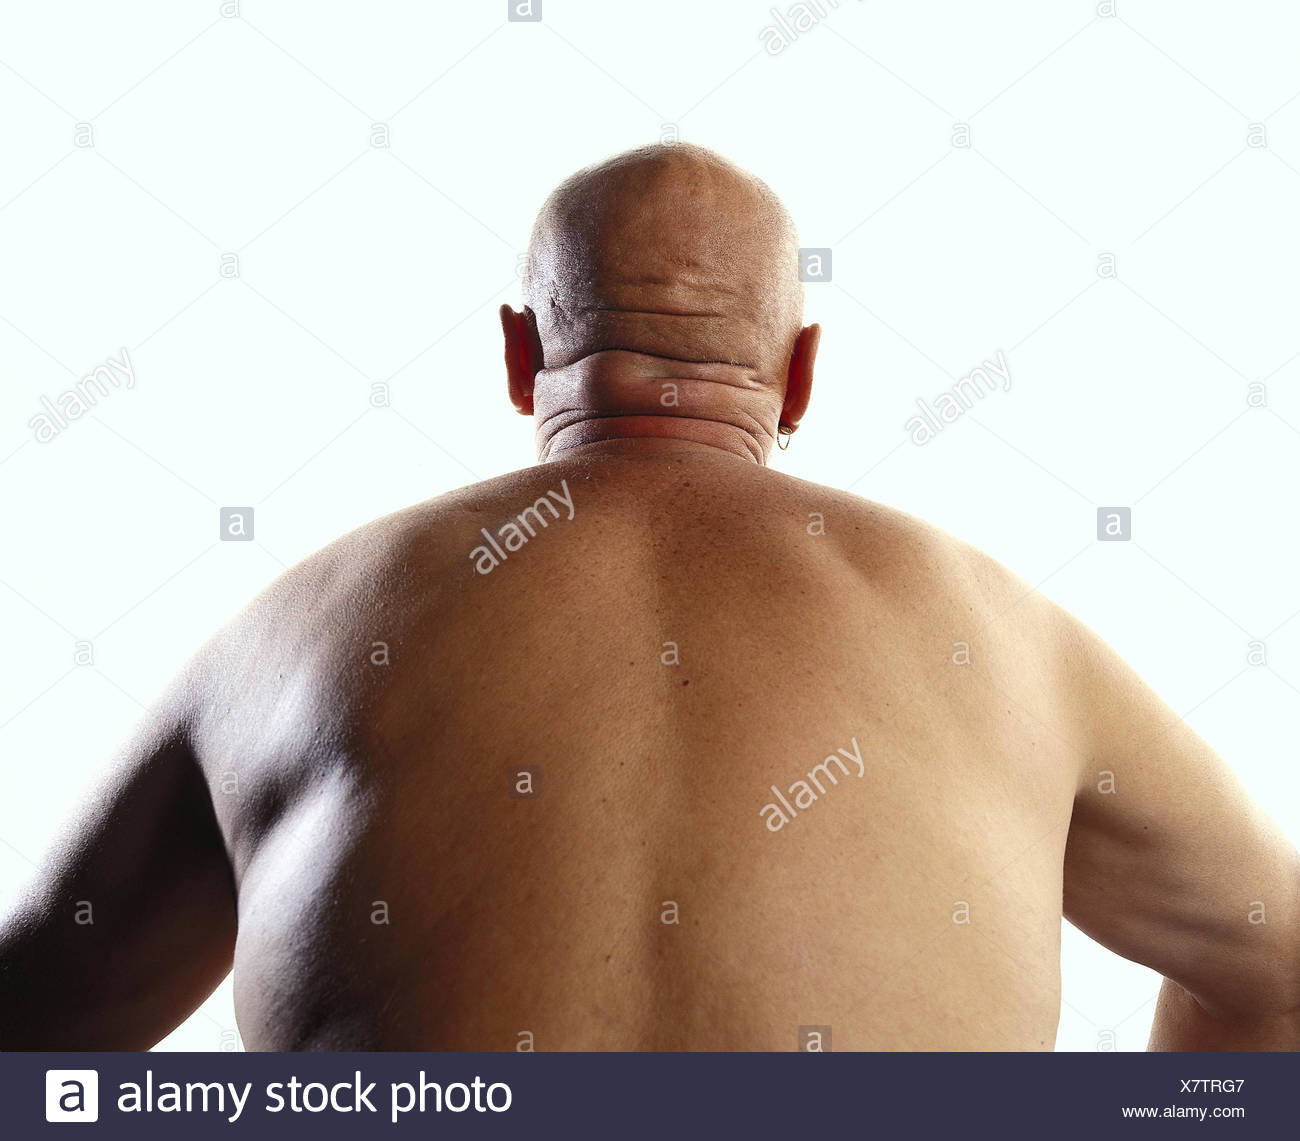 Lose weight safely and quickly image 3